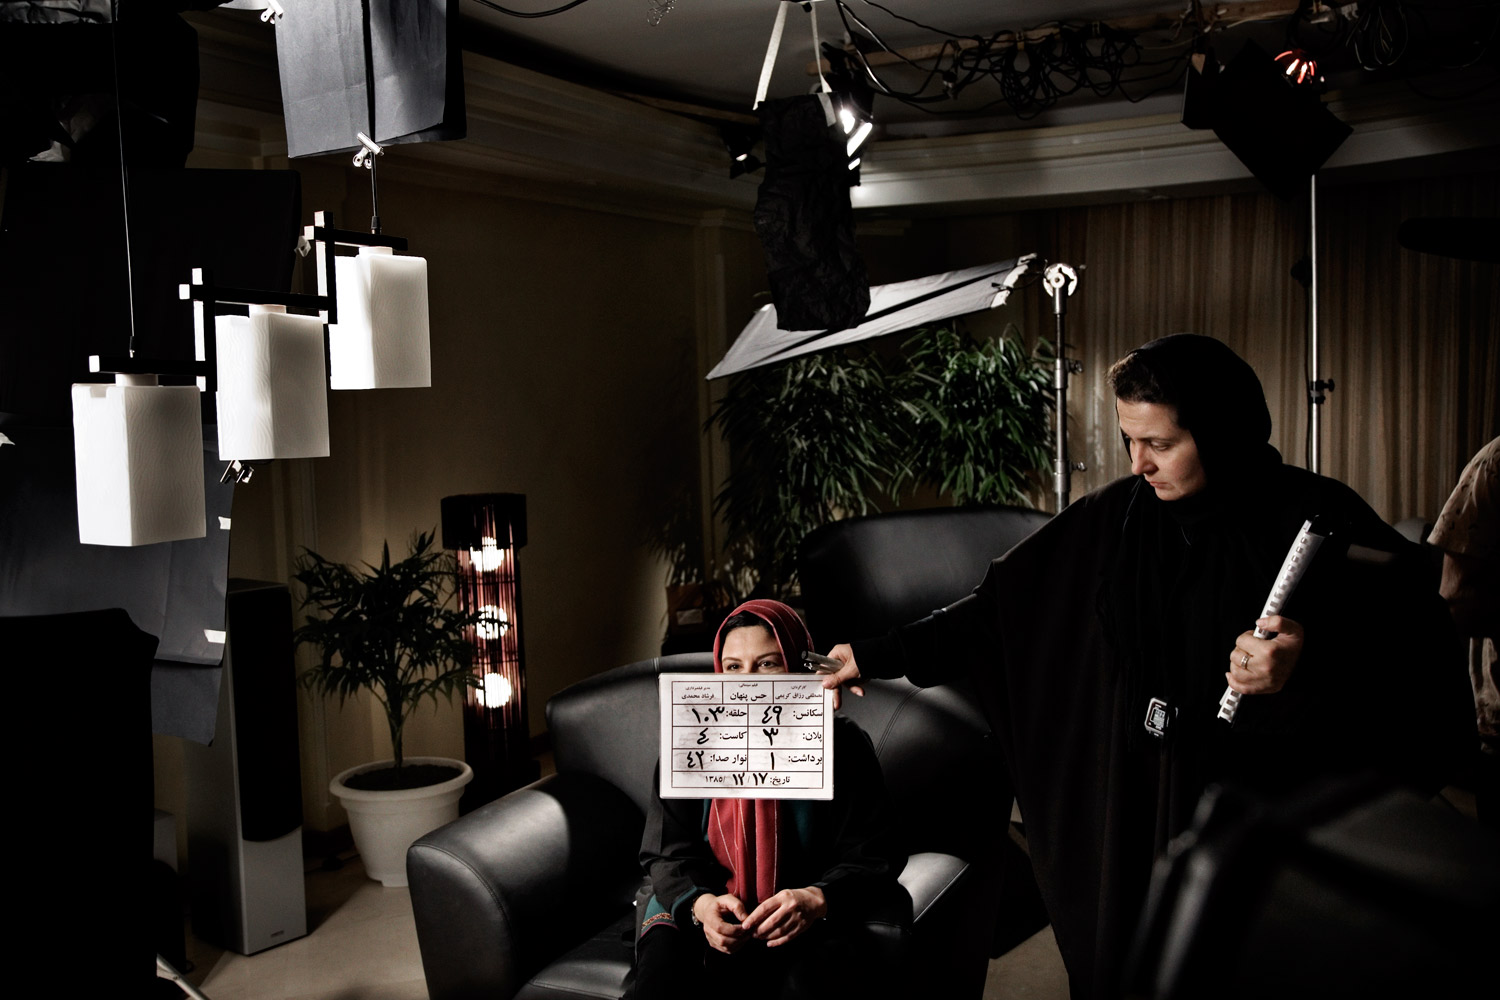 An actress and crew member prepare for a scene on the set of director Rusagh Karimi's film The Hidden Meaning in Tehran.